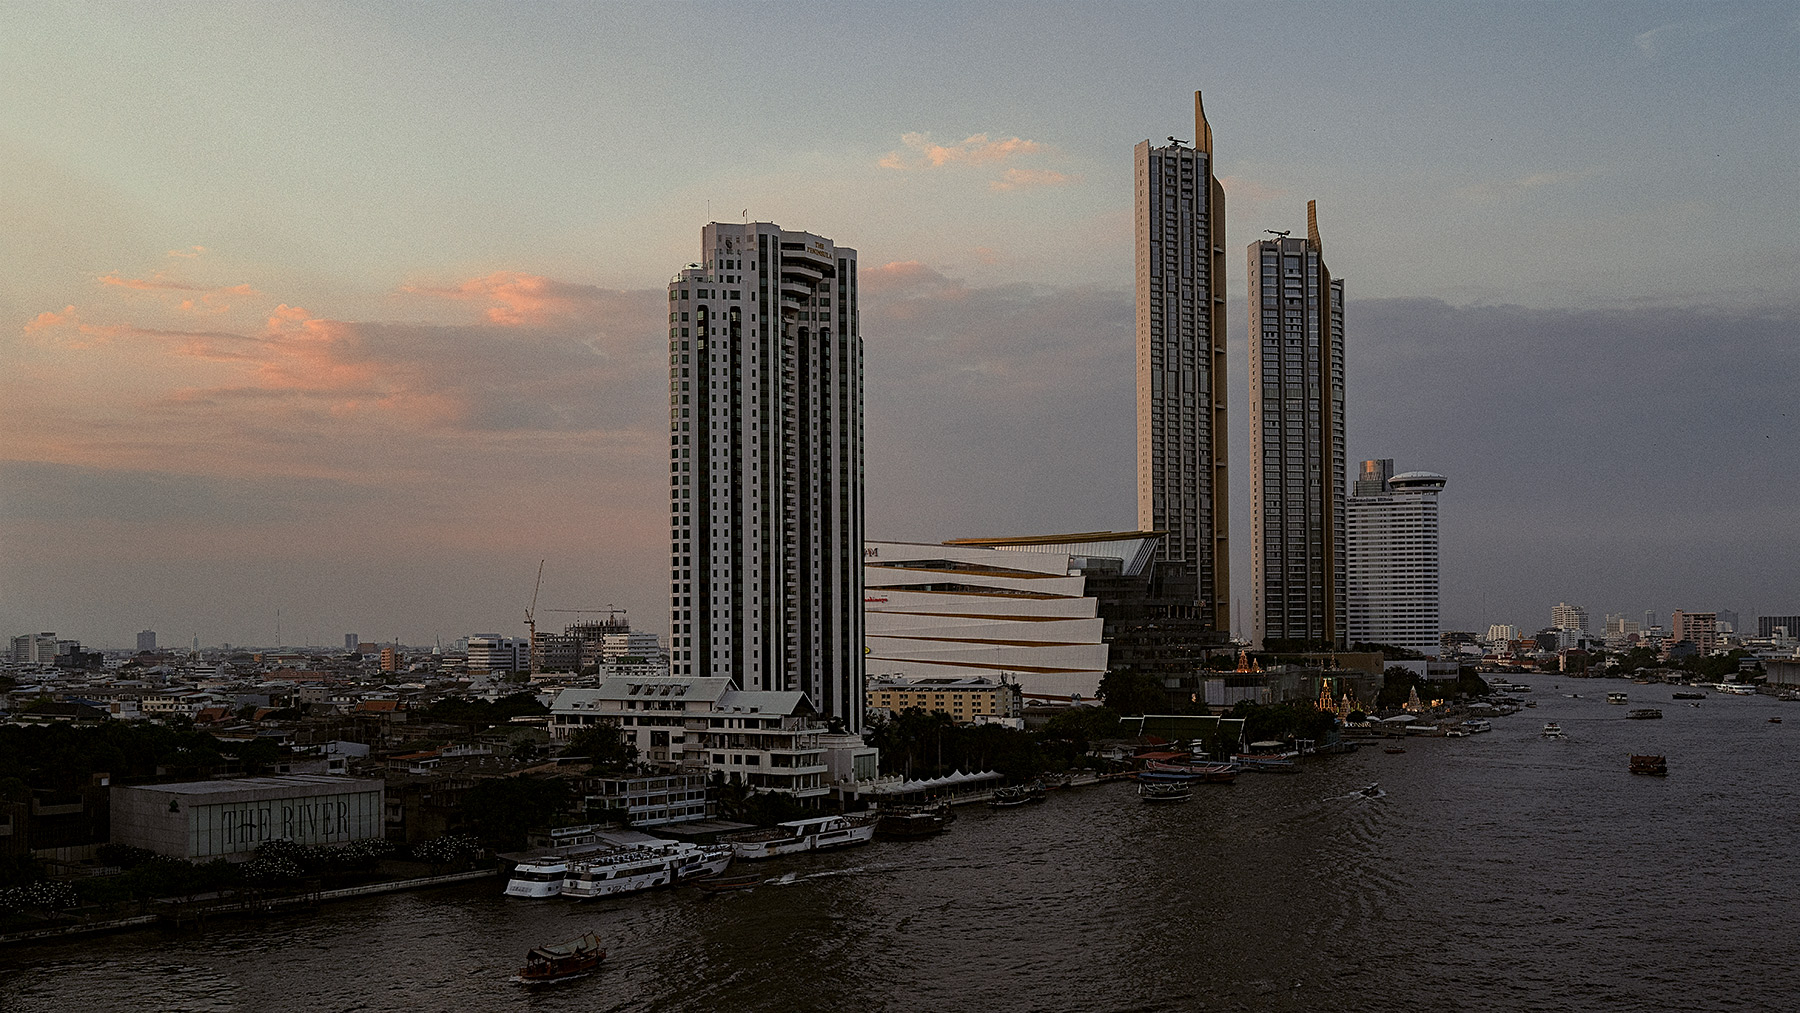 Good Boy Wolf Photographer, filmic landscape, Bangkok skyline, high rise buildings